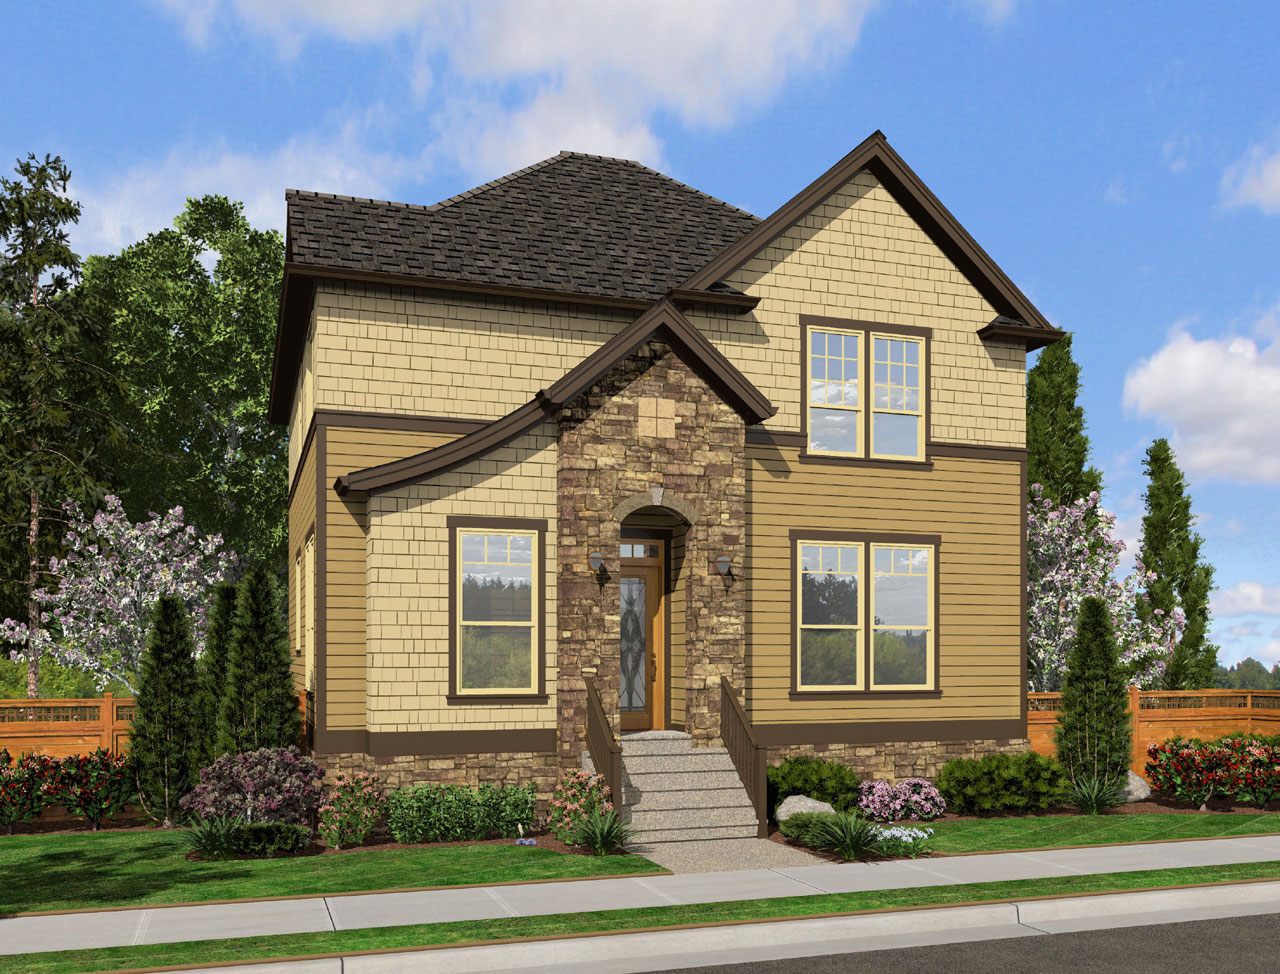 Craftsman Style House Plans Plan: 74-700